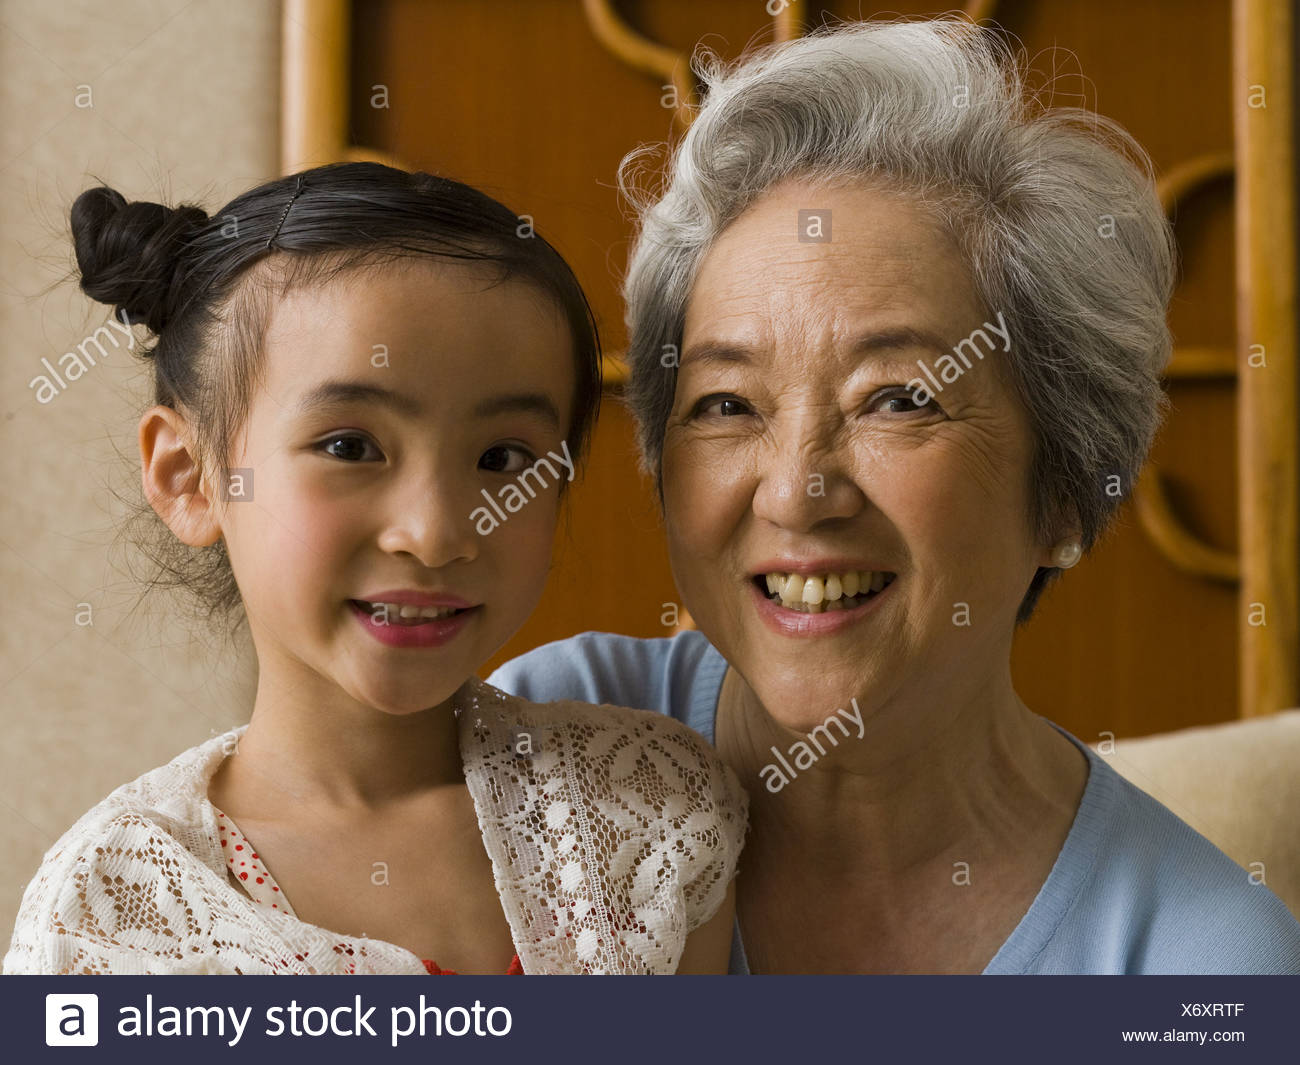 Grandmother with granddaughter smiling - Stock Image